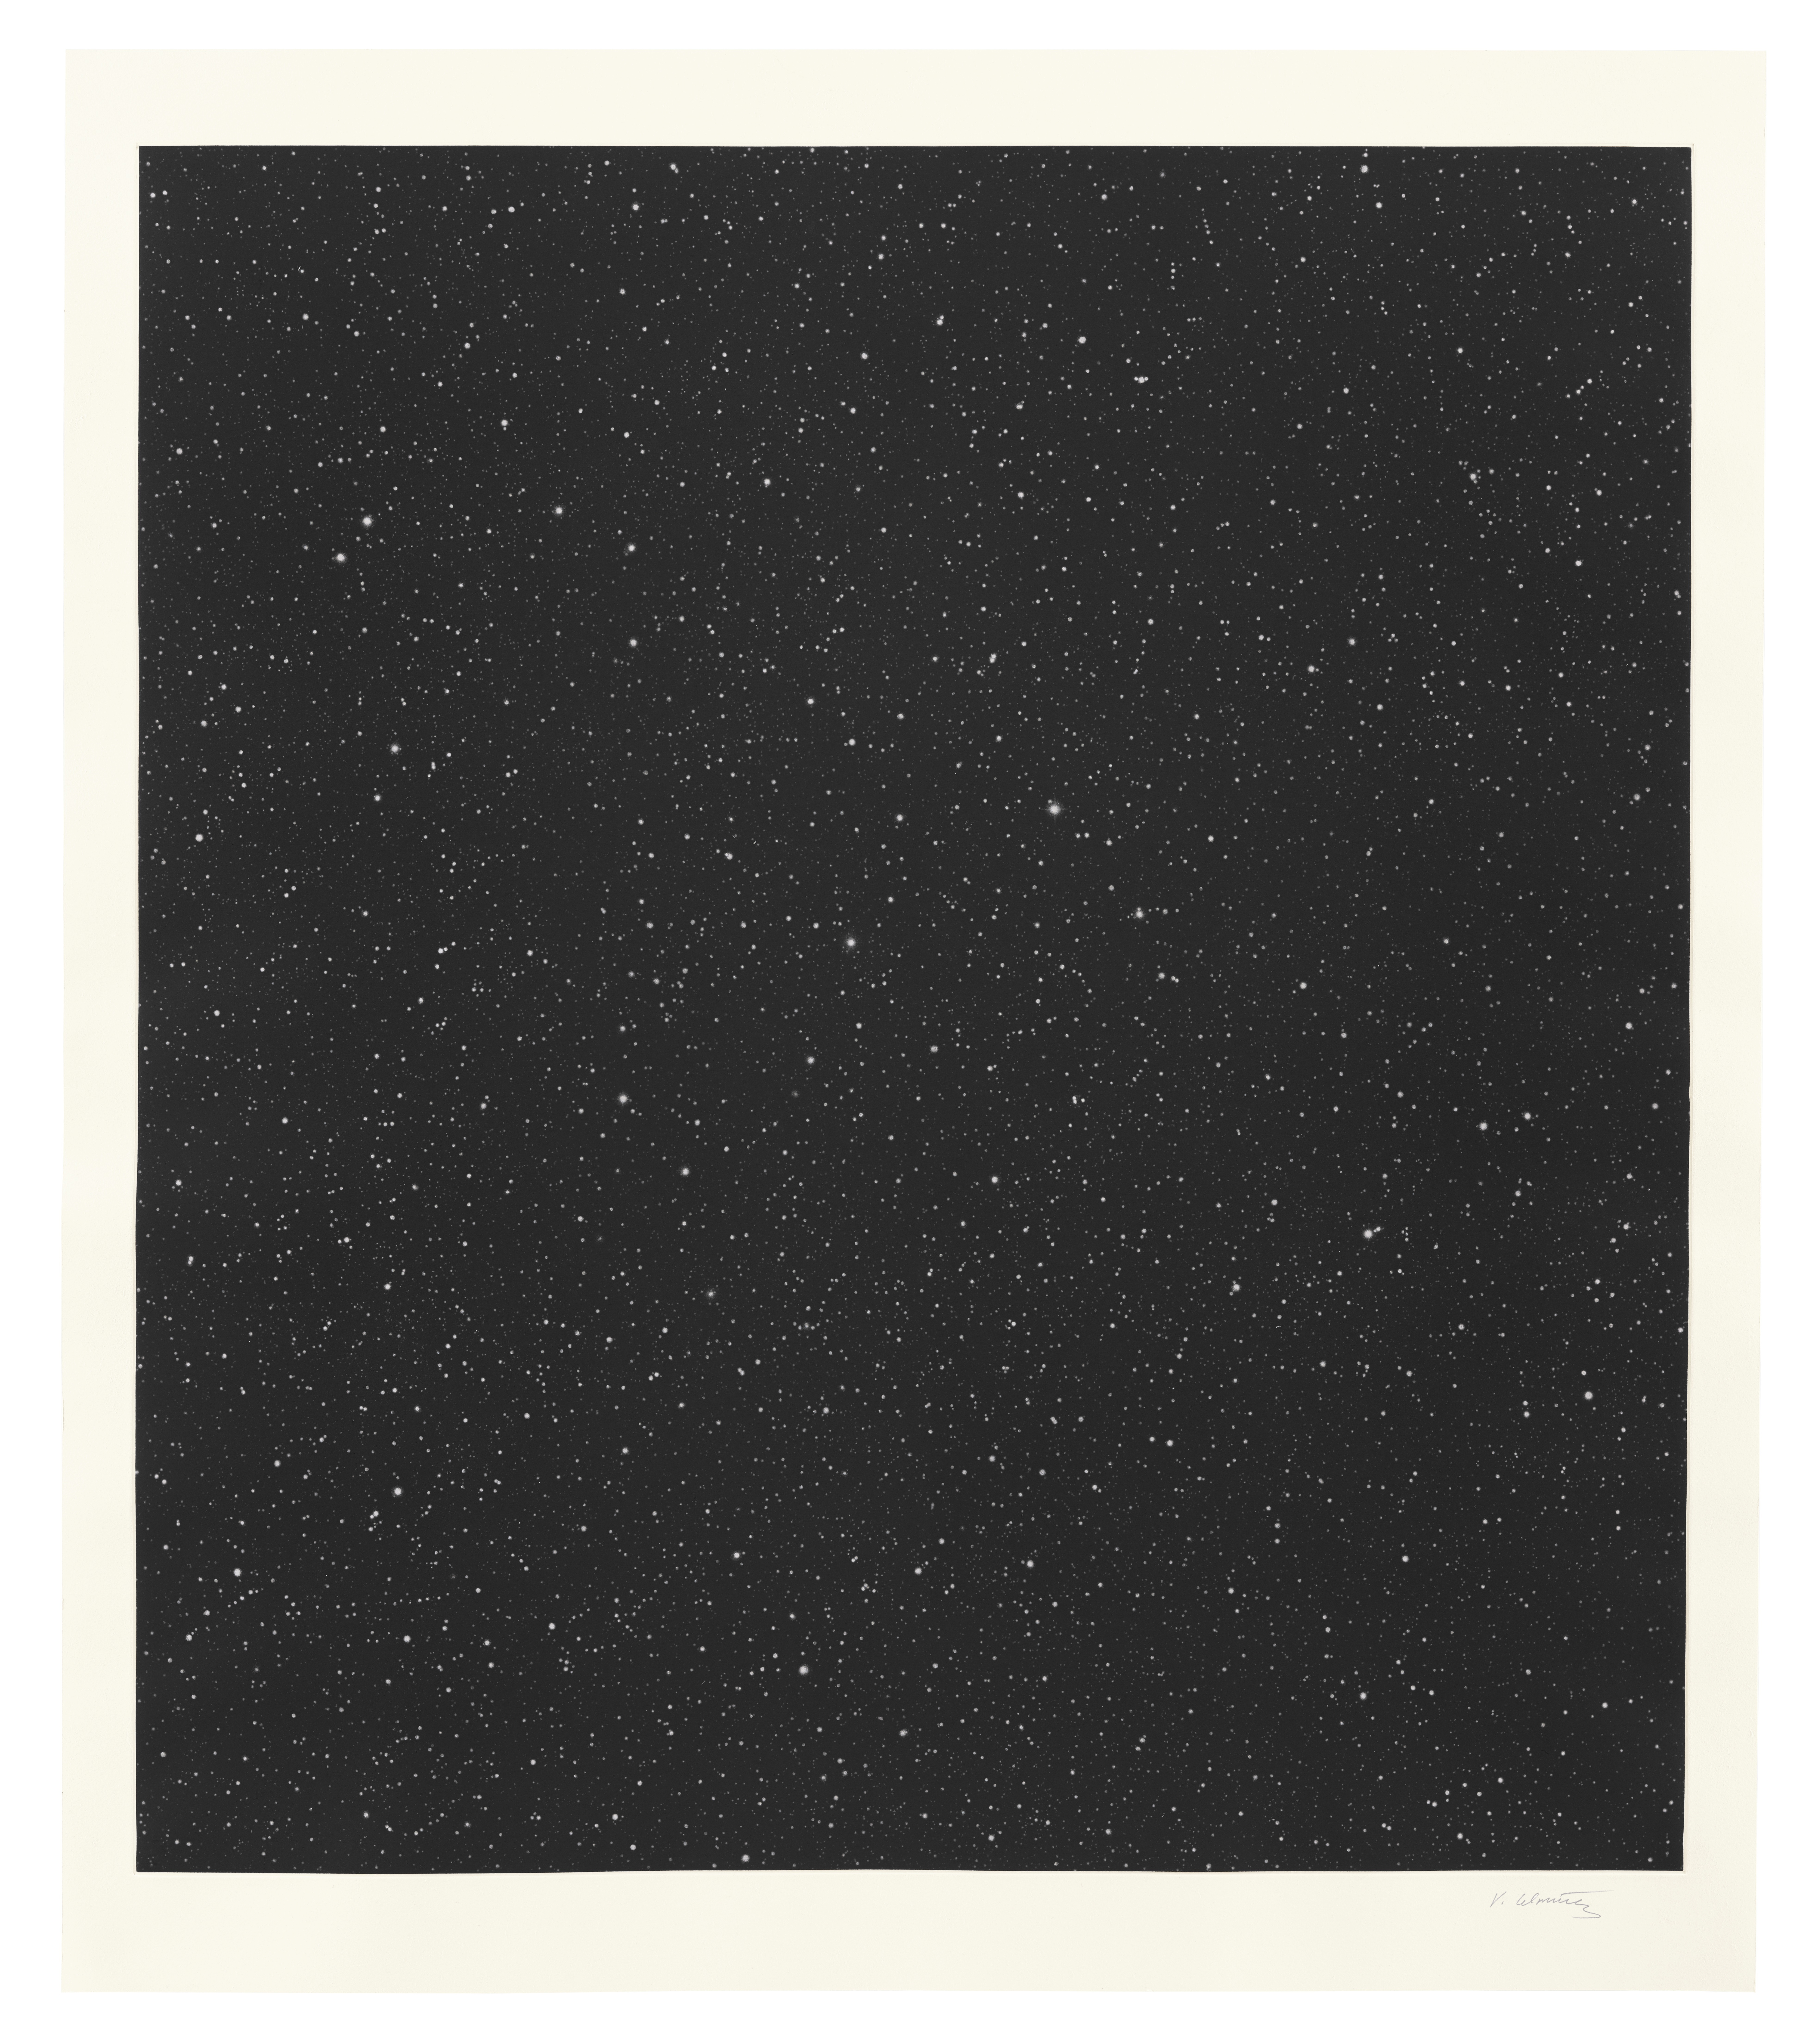 A print features a large black square with specks of white (that looks like the night sky) enclosed by a white border